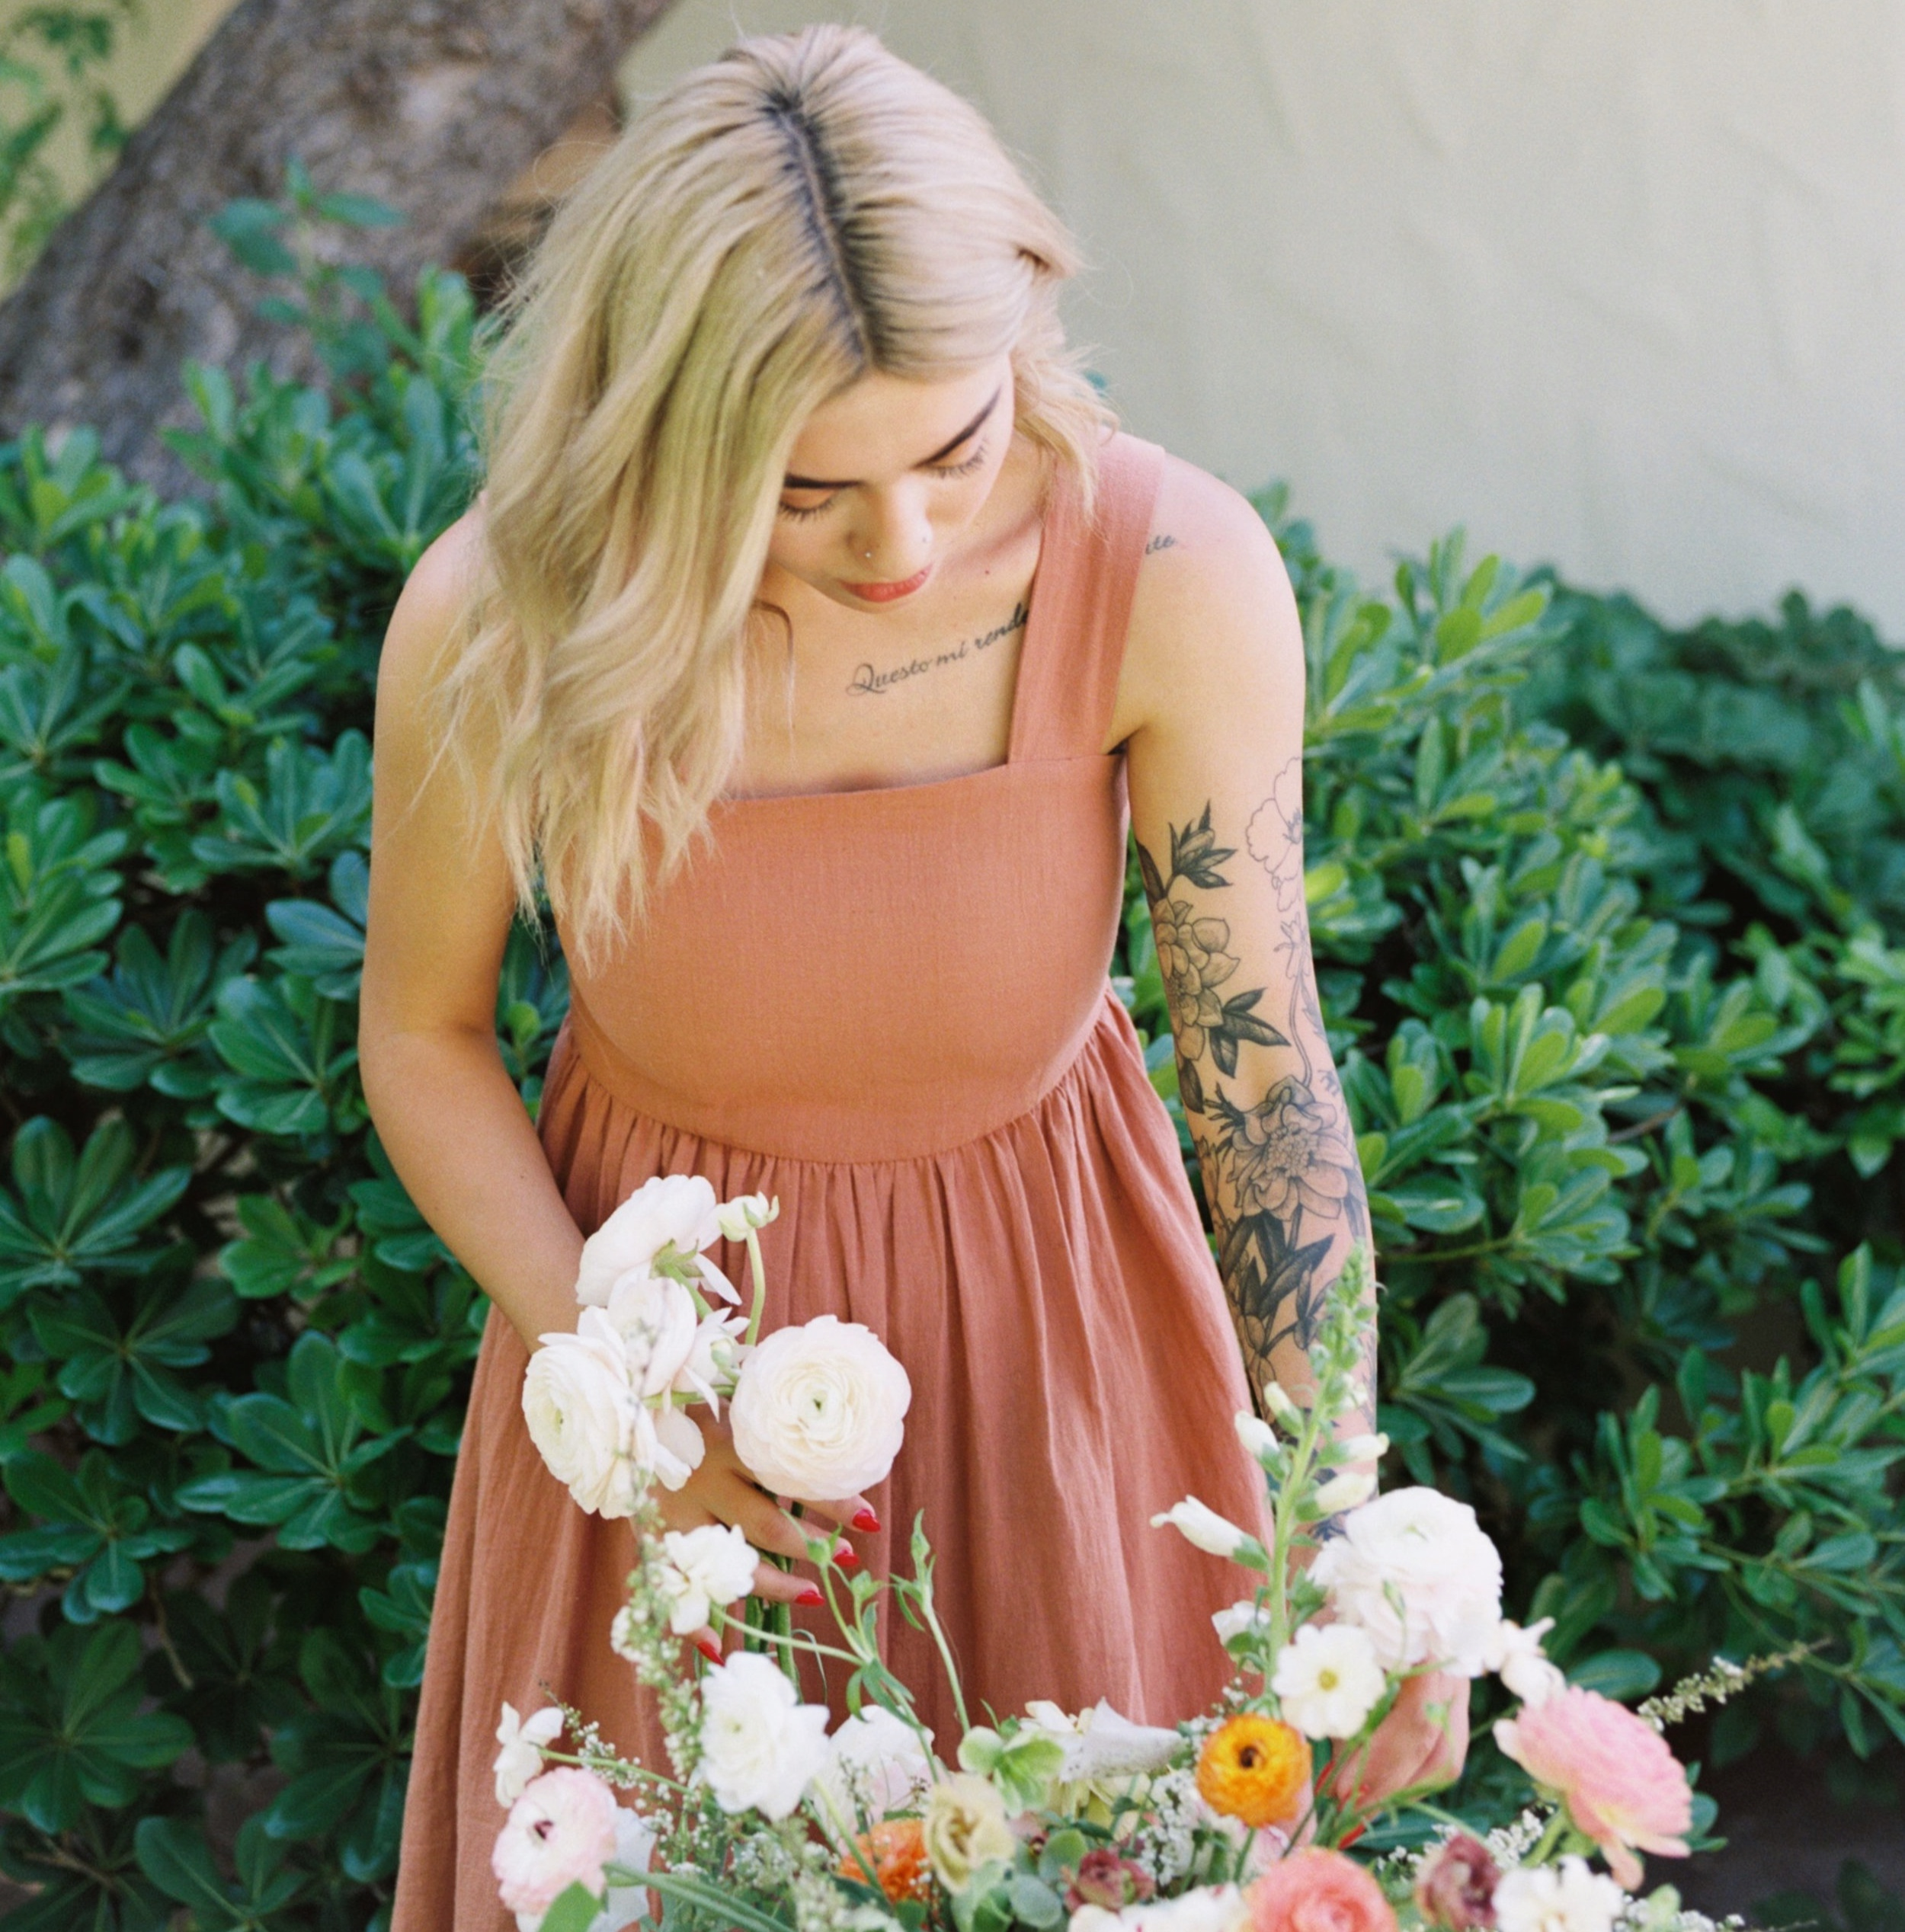 Nichollette - Nichollette is one of our full time designers and has been a Wildflower since 2015. Her strengths include her attention to detail and problem solving skills (she's quite the inventor.) Nichollette's floral designs truly reflect The Wildflower brand and are always romantic and thoughtful.